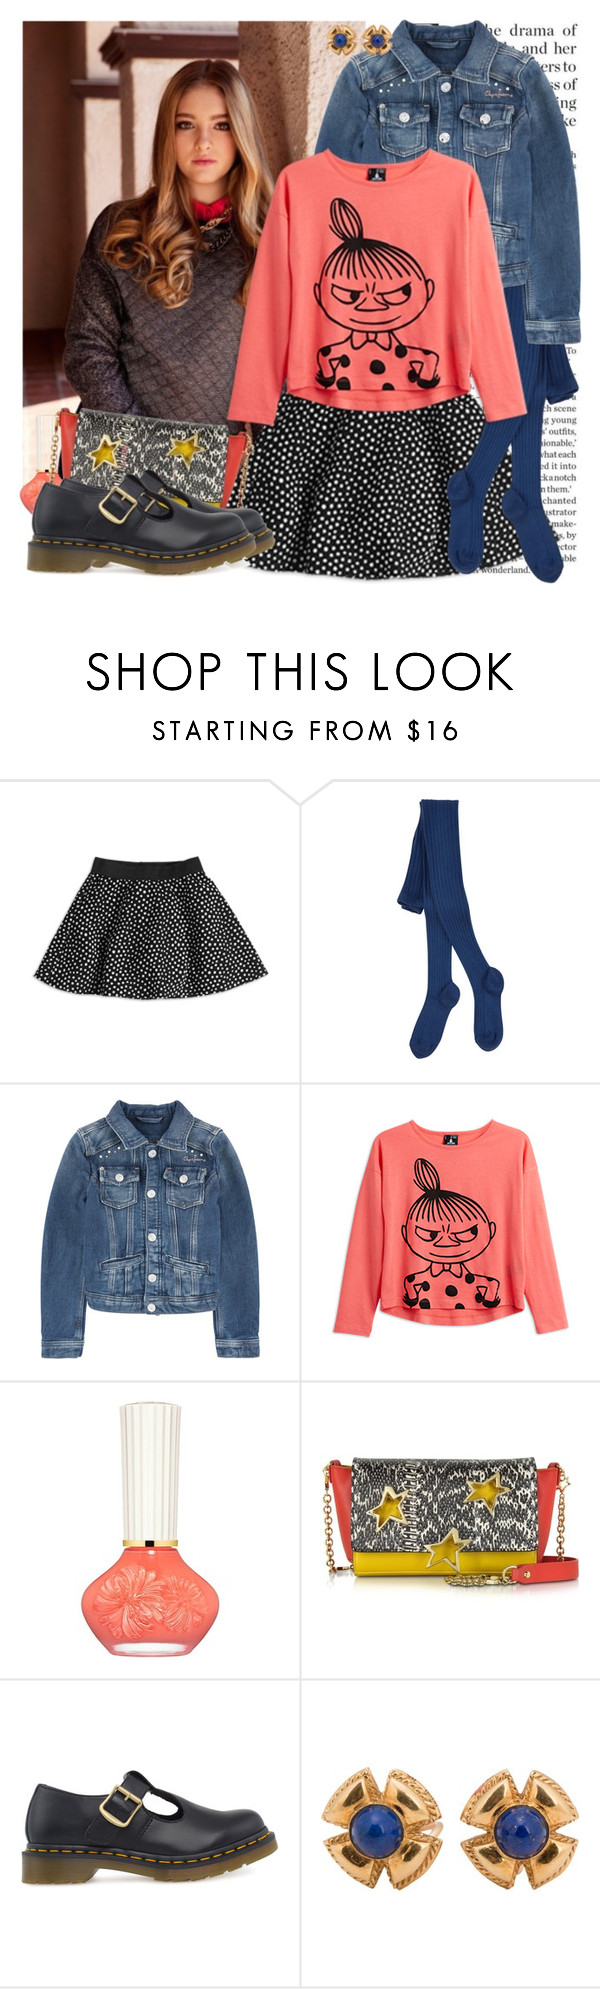 """Rnmee 1.13"" by vandinha2010 ❤ liked on Polyvore featuring Pepe Jeans London, Paul & Joe, Corto Moltedo, Dr. Martens and Tiffany & Co."